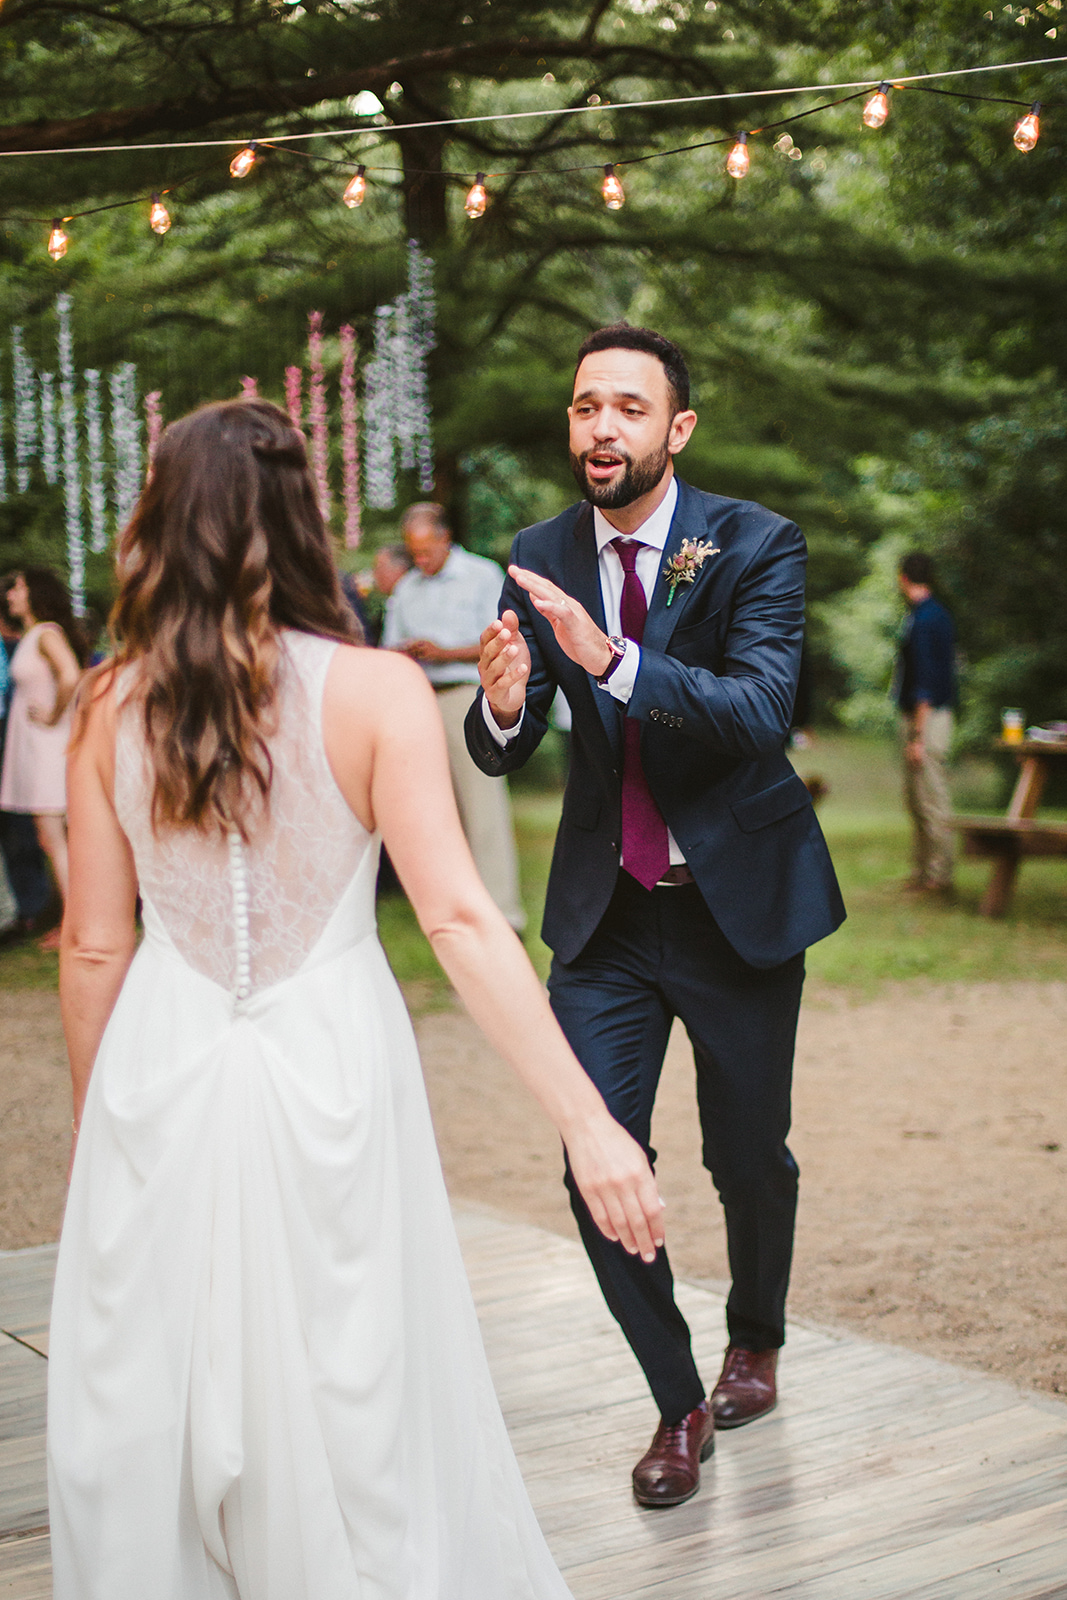 Dan & Elizabeth dancing during their Long Lake Outdoor Center Wedding